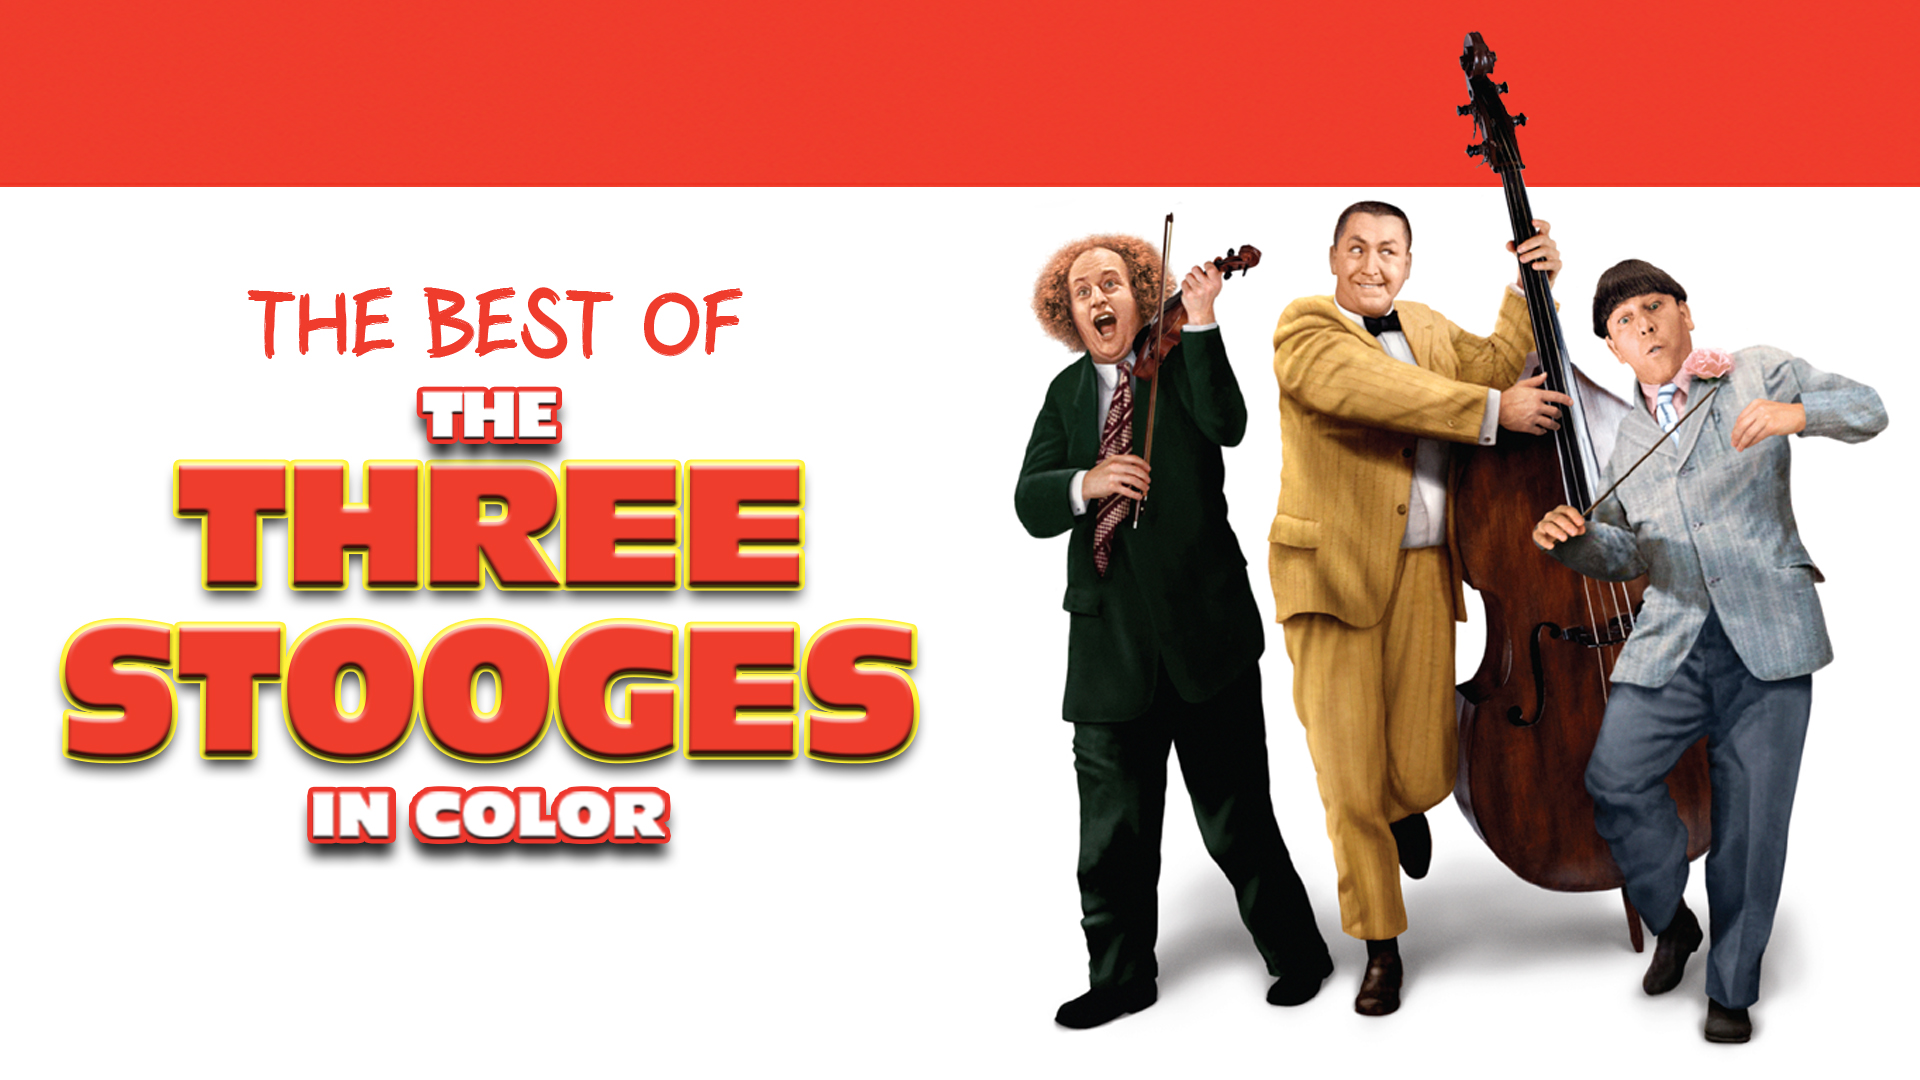 The Best of The Three Stooges in Color!